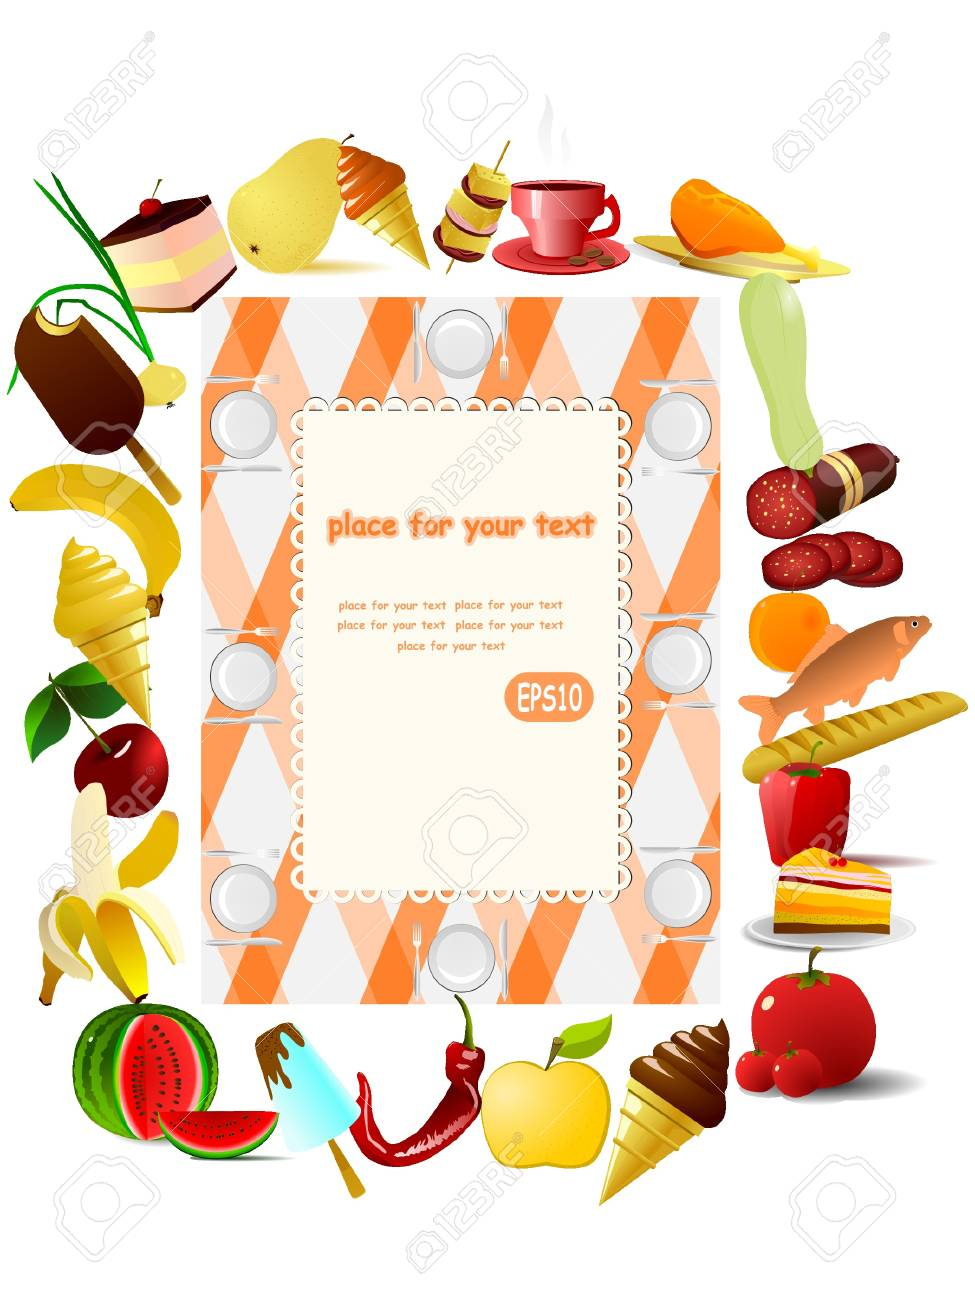 Vector illustration. Picnic. Stock Vector - 11942503